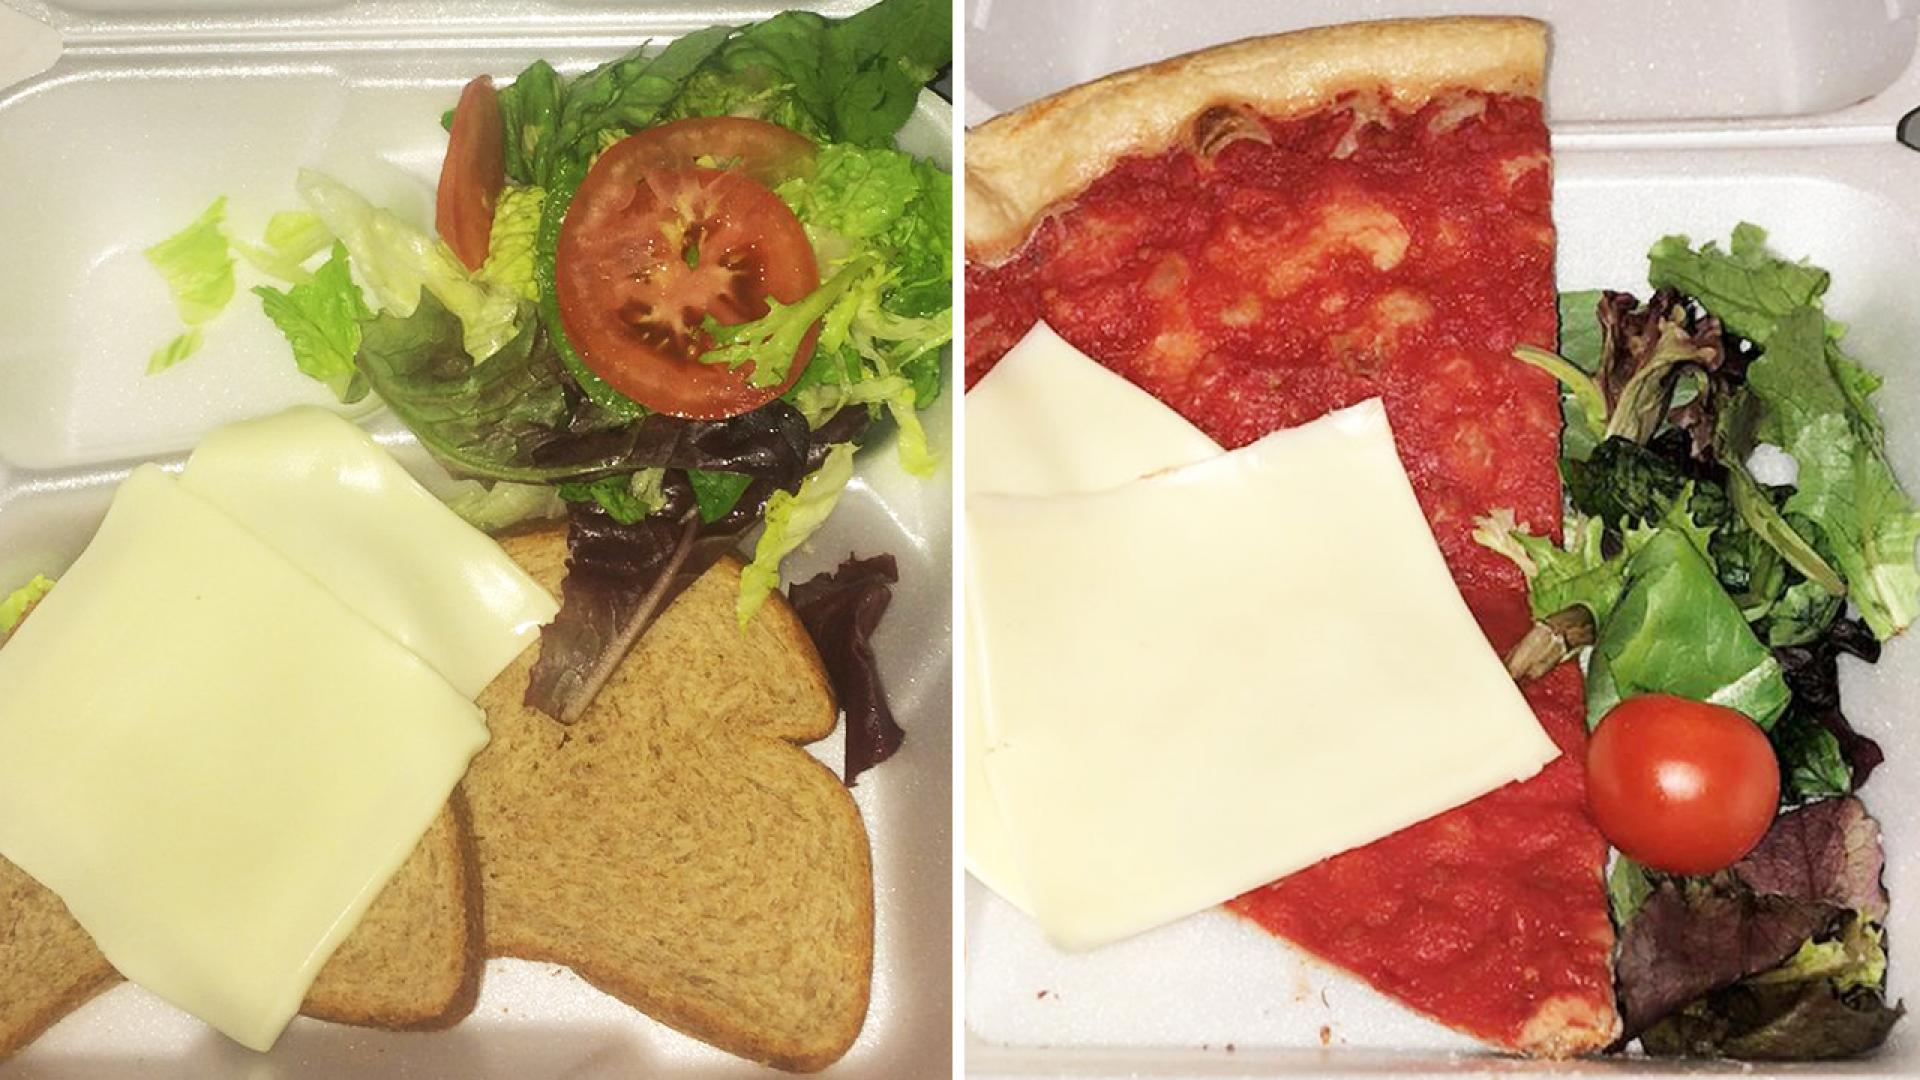 A pizzeria offers a gag menu item inspired by the Fyre Festival.